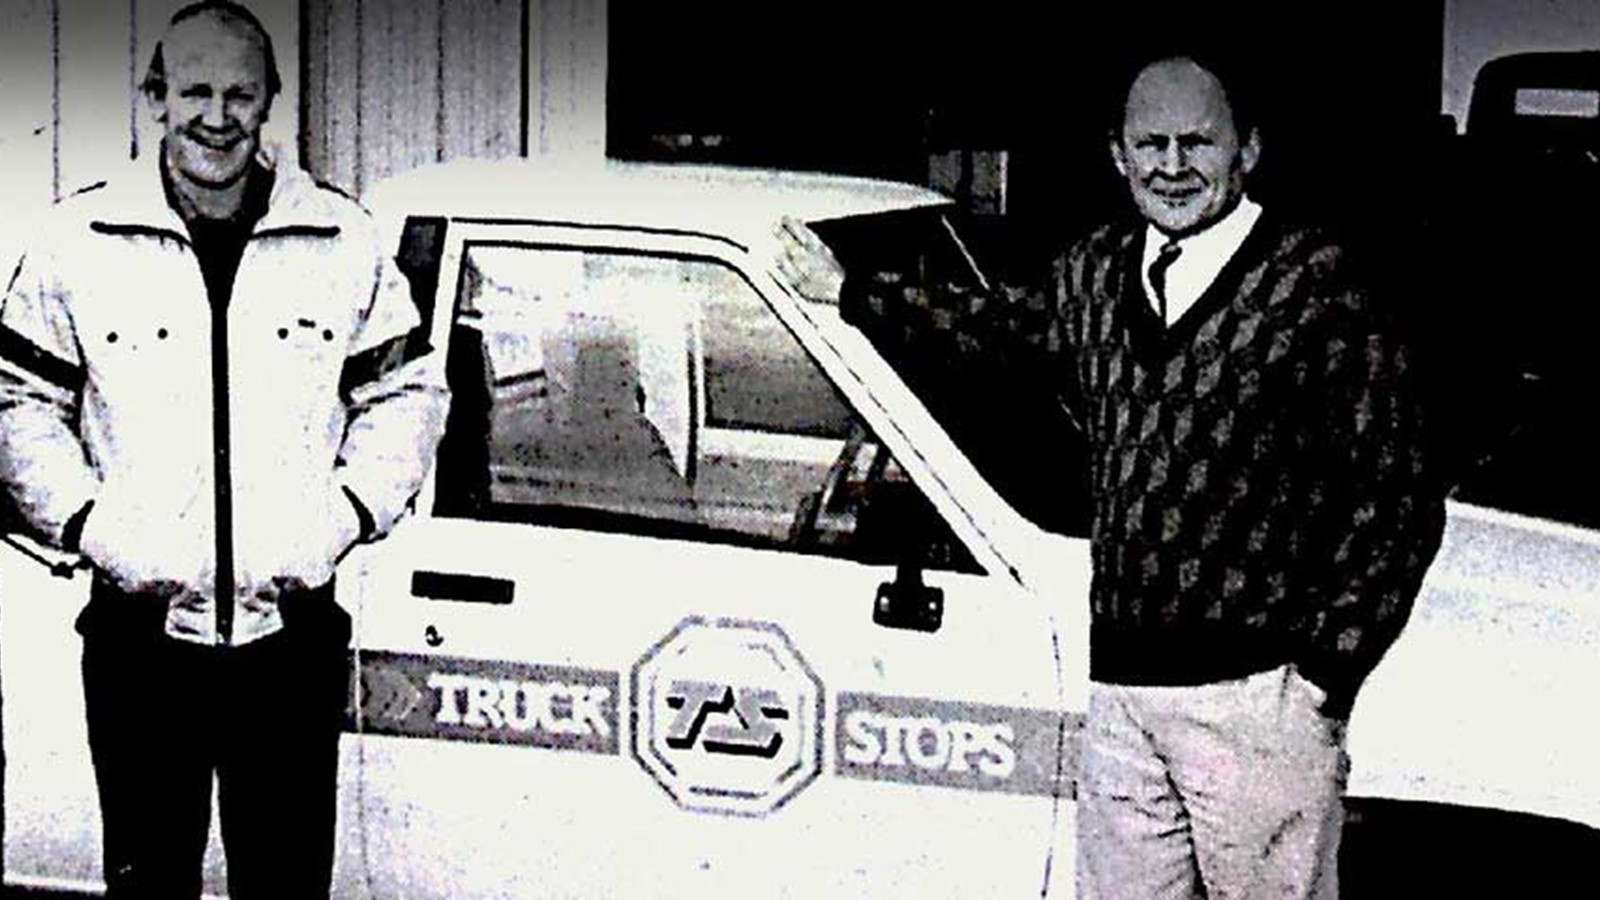 After-sales parts Customer and technician were at Truckstops Invercargill workshop in 1990